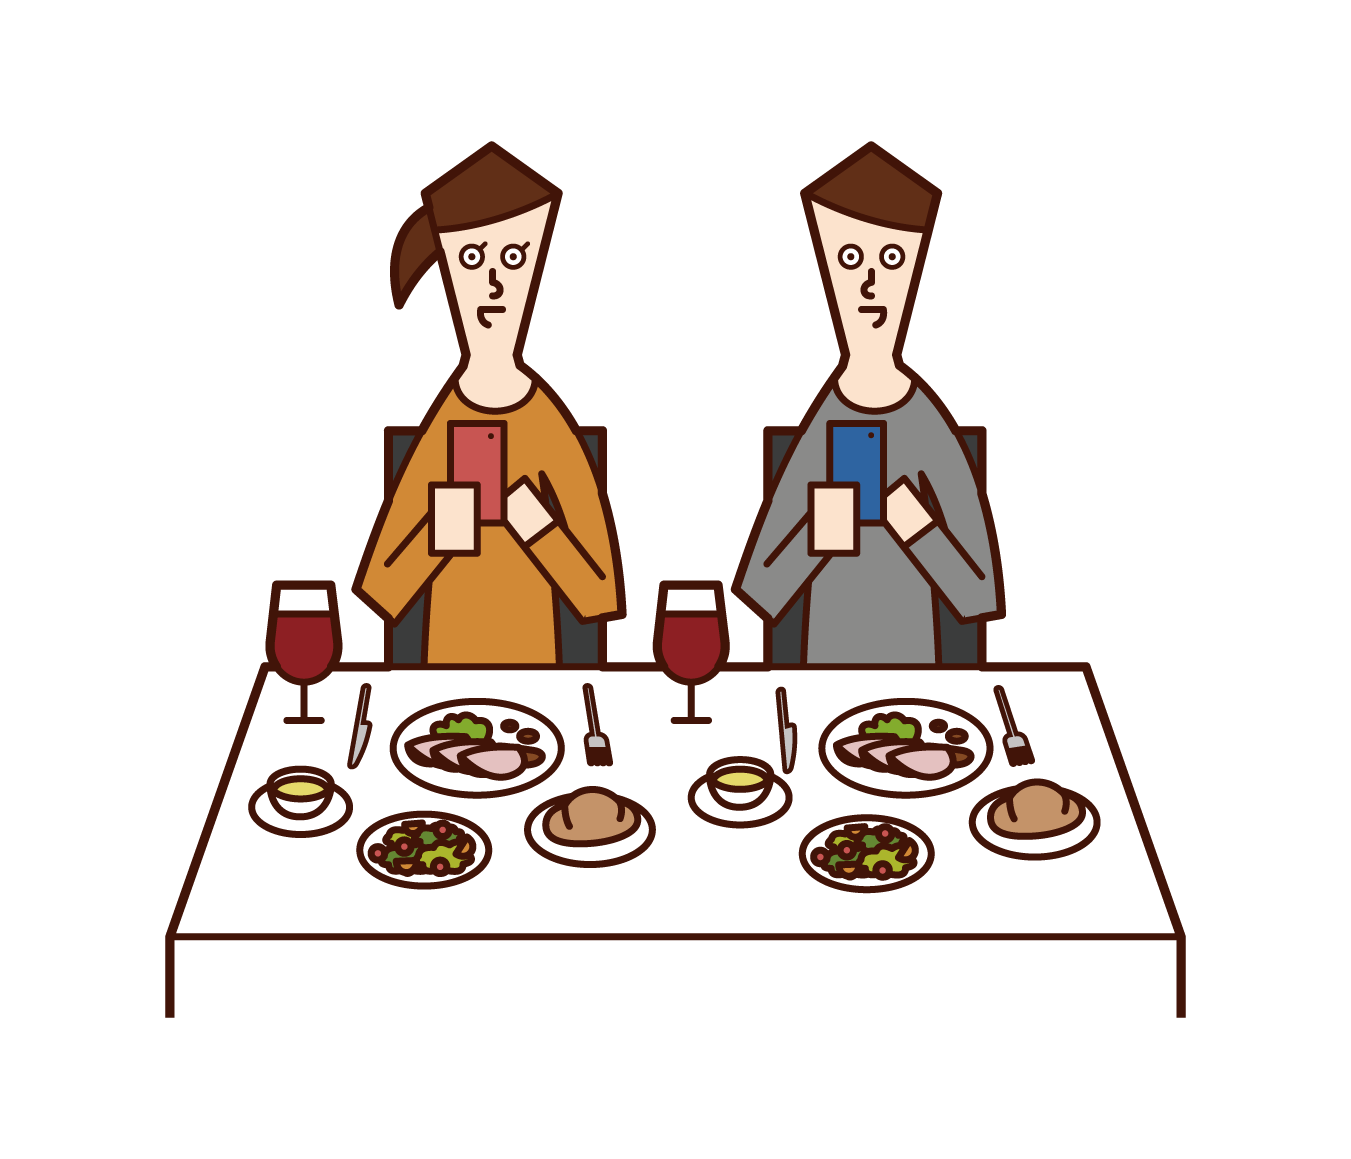 Illustrations of people (men and women) taking pictures of food at restaurants